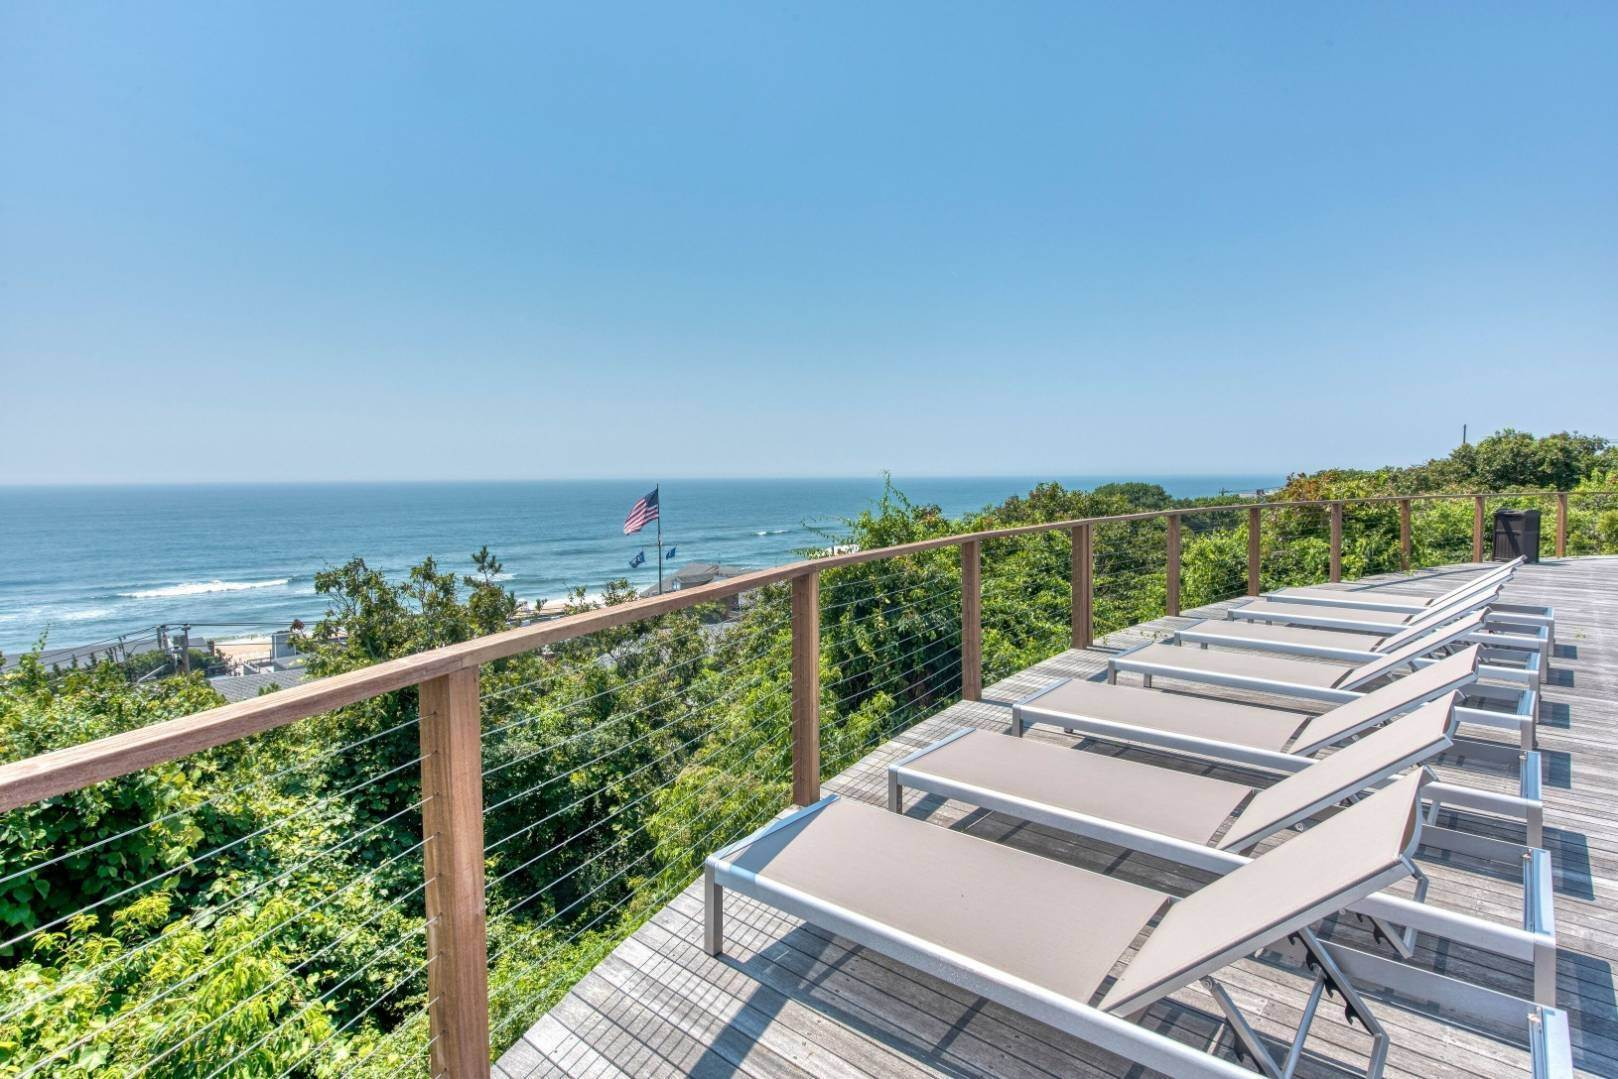 Single Family Home at Hilltop Oceanview Stunner With 5 Bedrooms, Pool Montauk, NY 11954